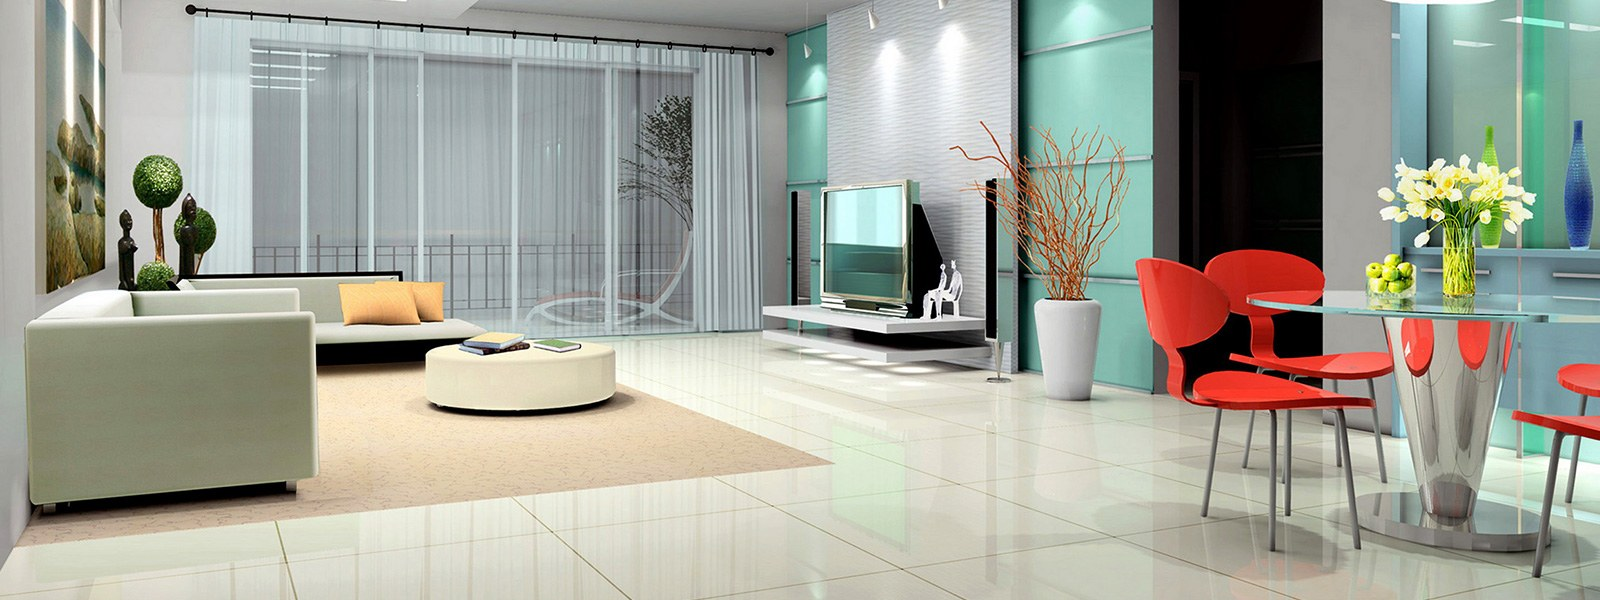 Smart Hotel Control Solutions - Savings, comfort and safety